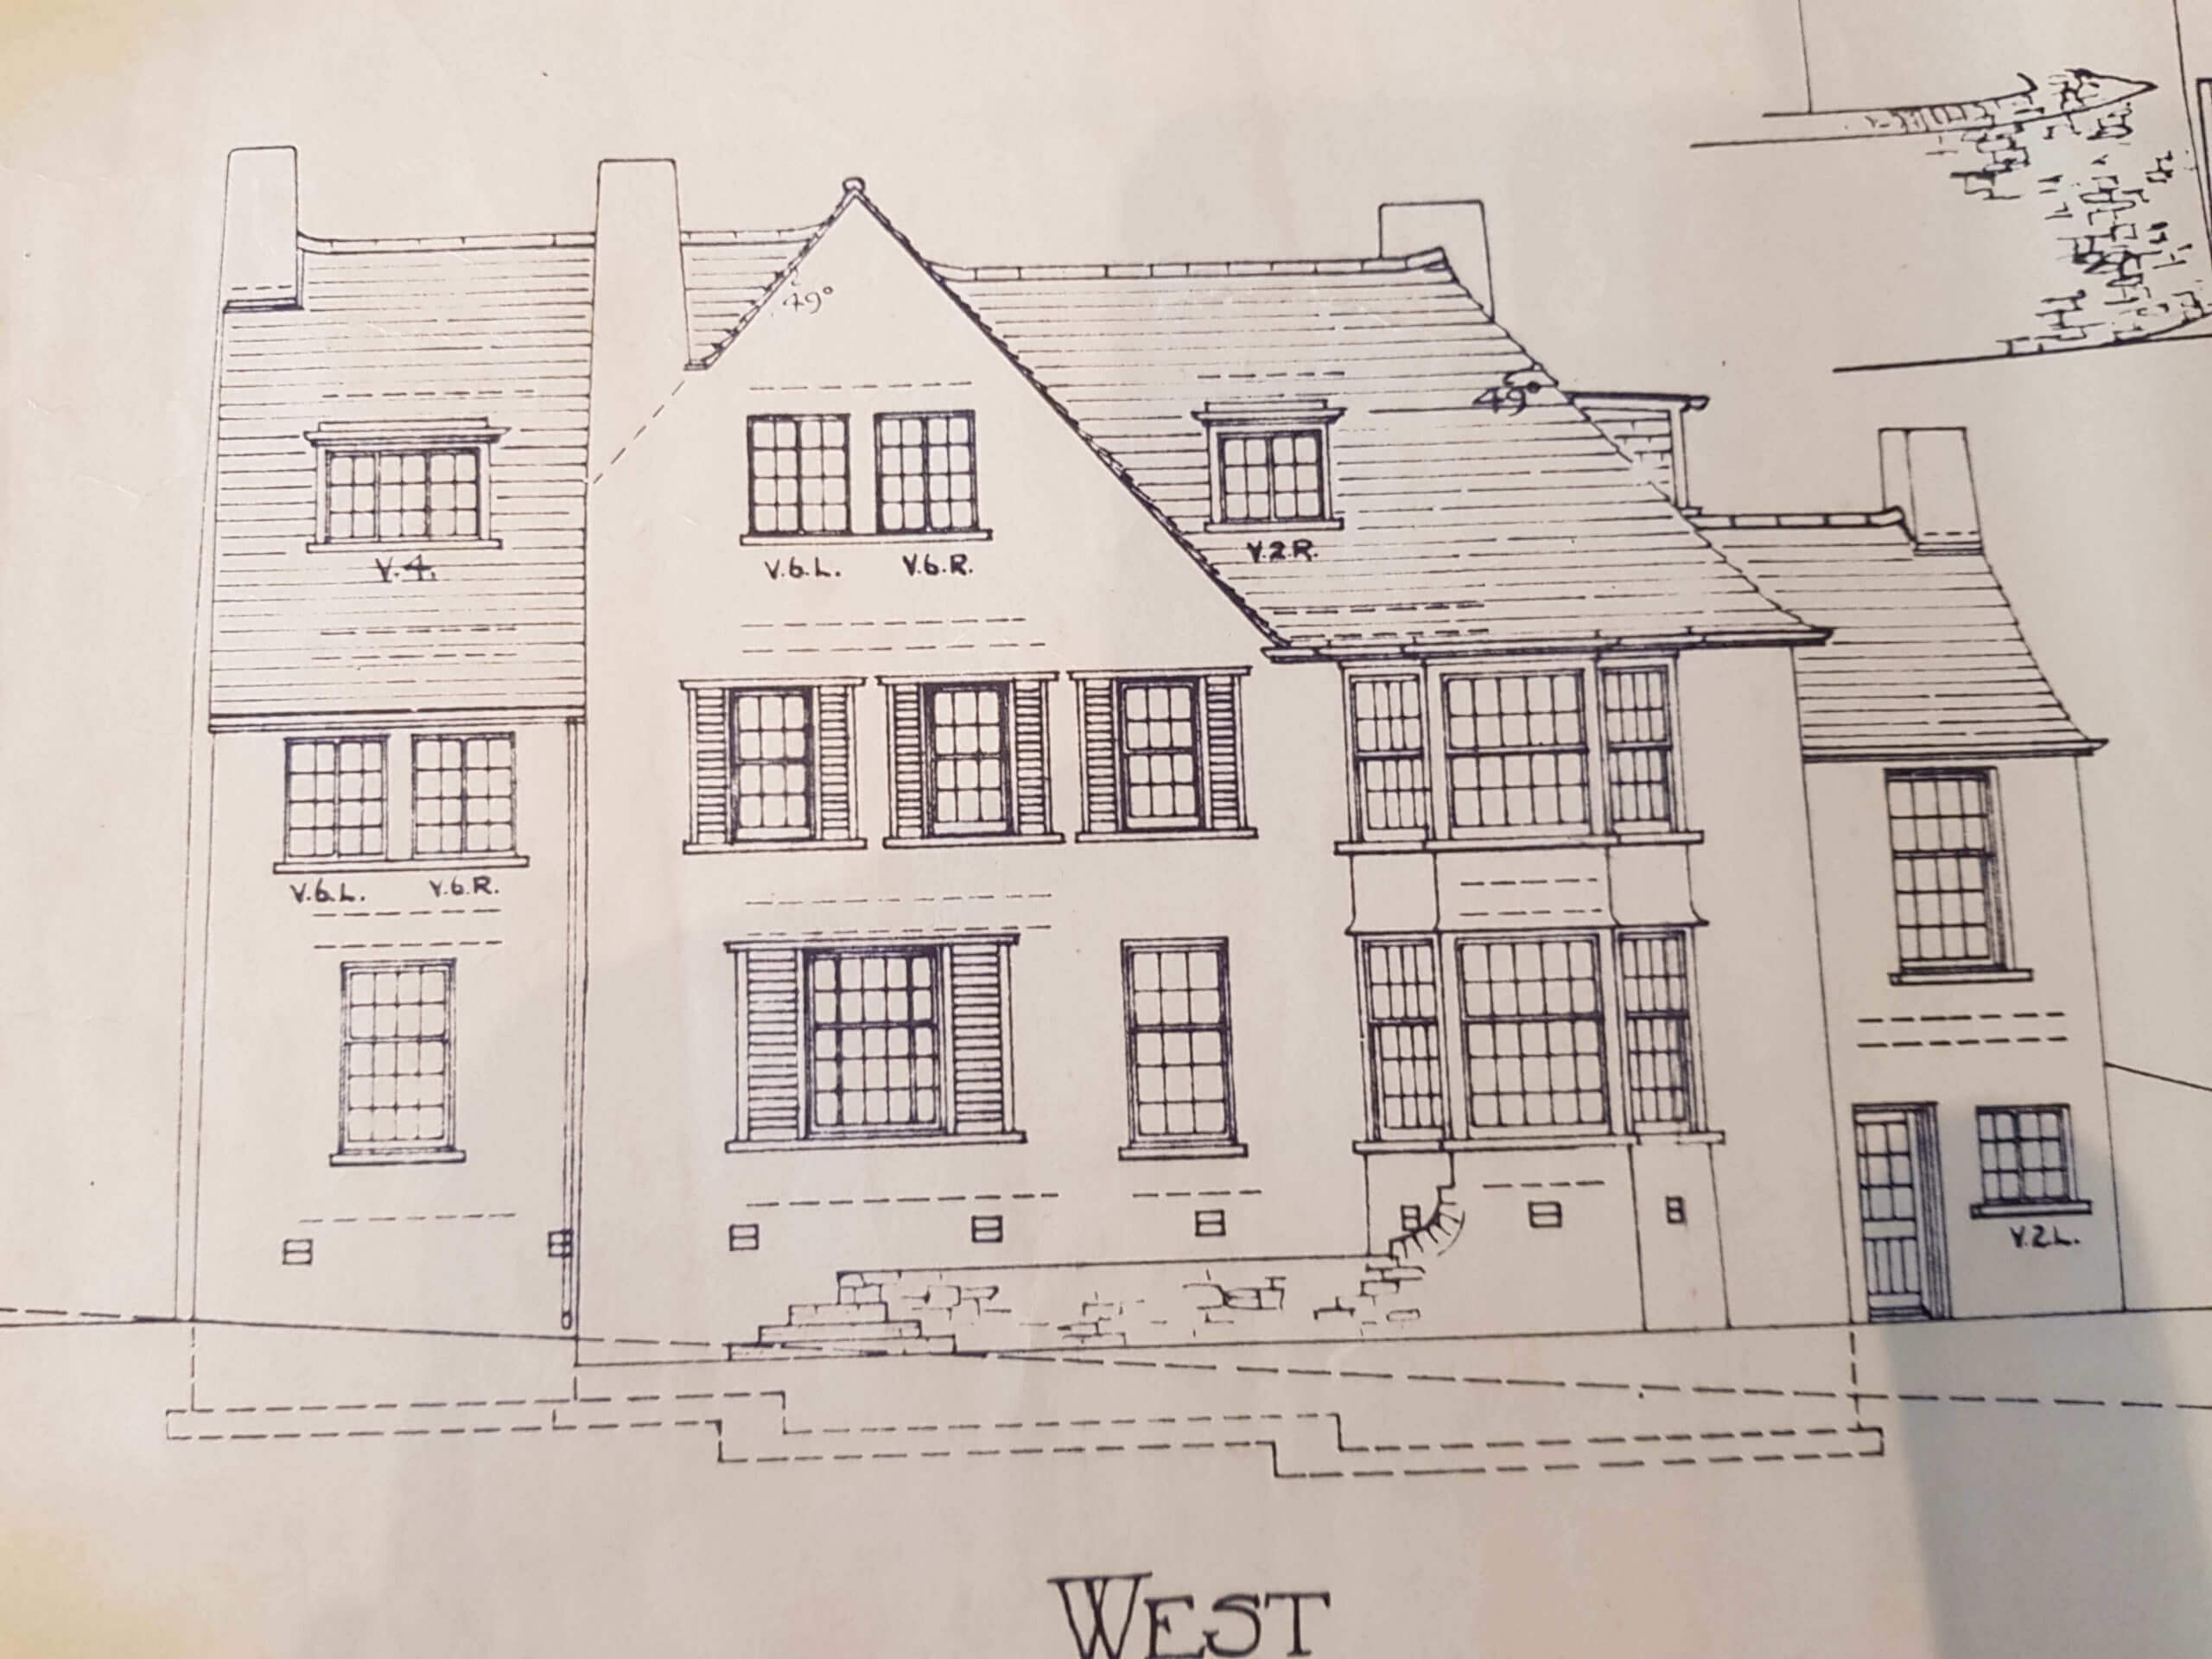 Kidsgrove Surveyors. Building Plan of an old traditional house